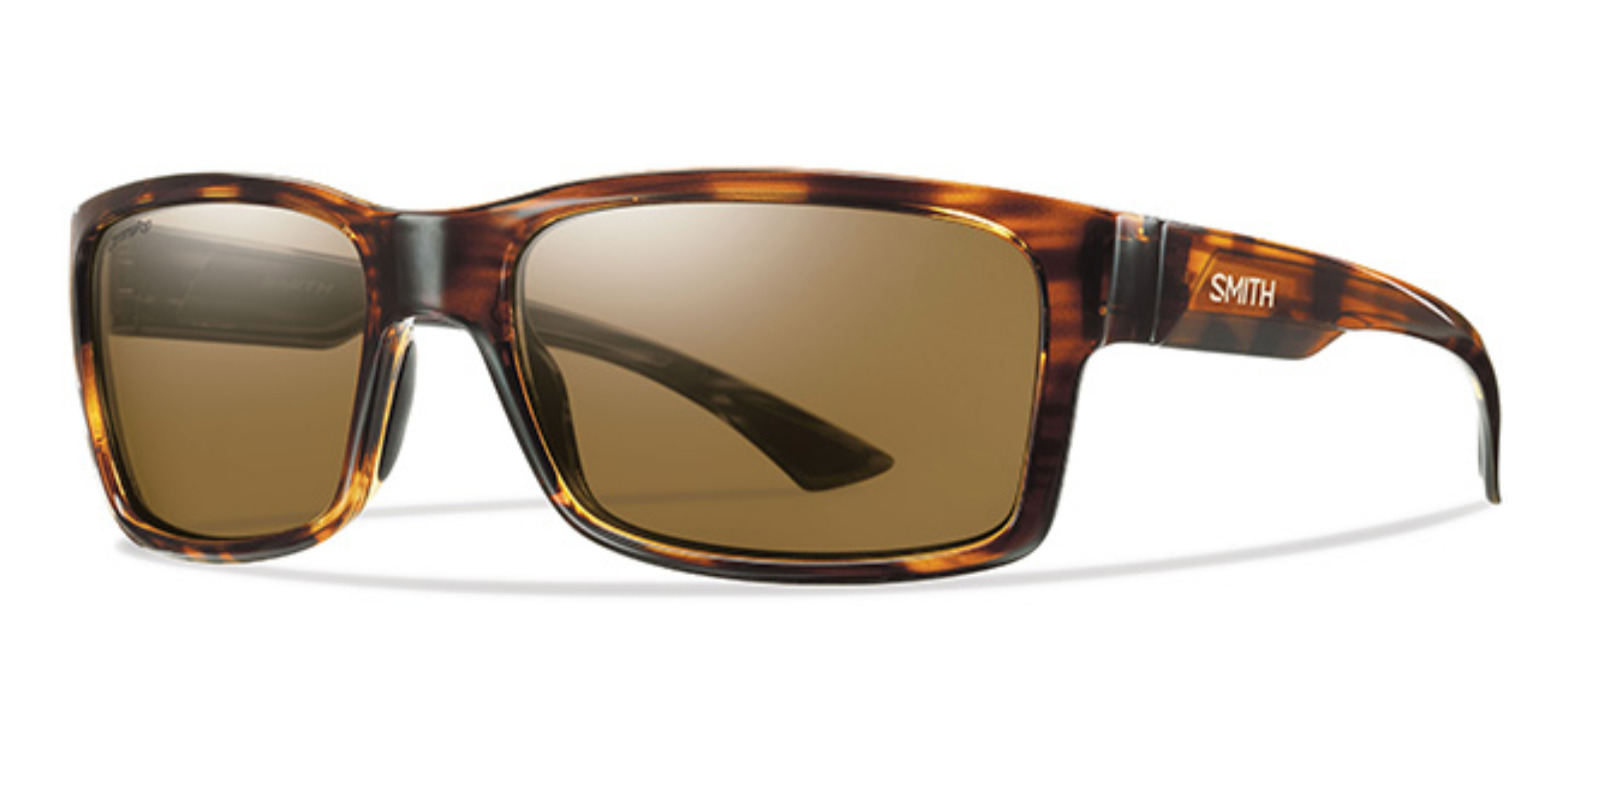 bc1a4413fd17f ... One UPC 715757437220 product image for Smith Dolen Sunglasses Havana  Polarized Brown